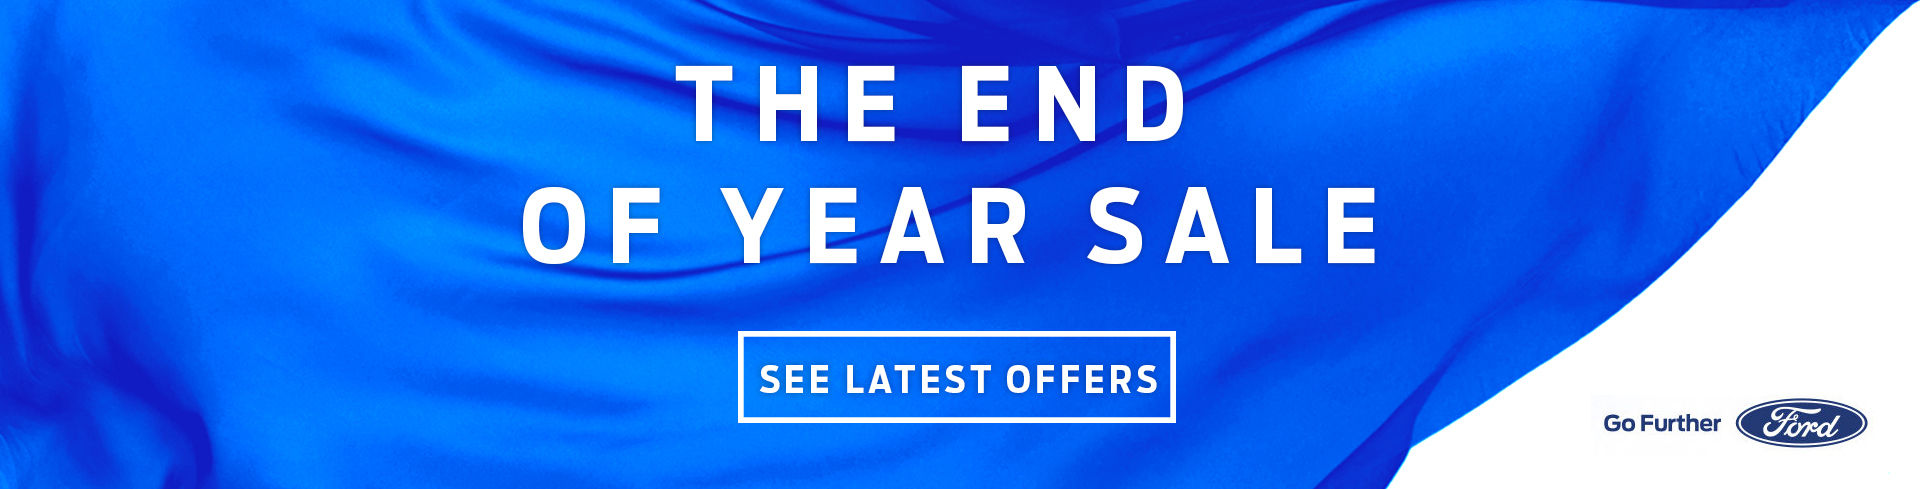 Ford - National Offer - The End Of Year Sale (Various Offers)